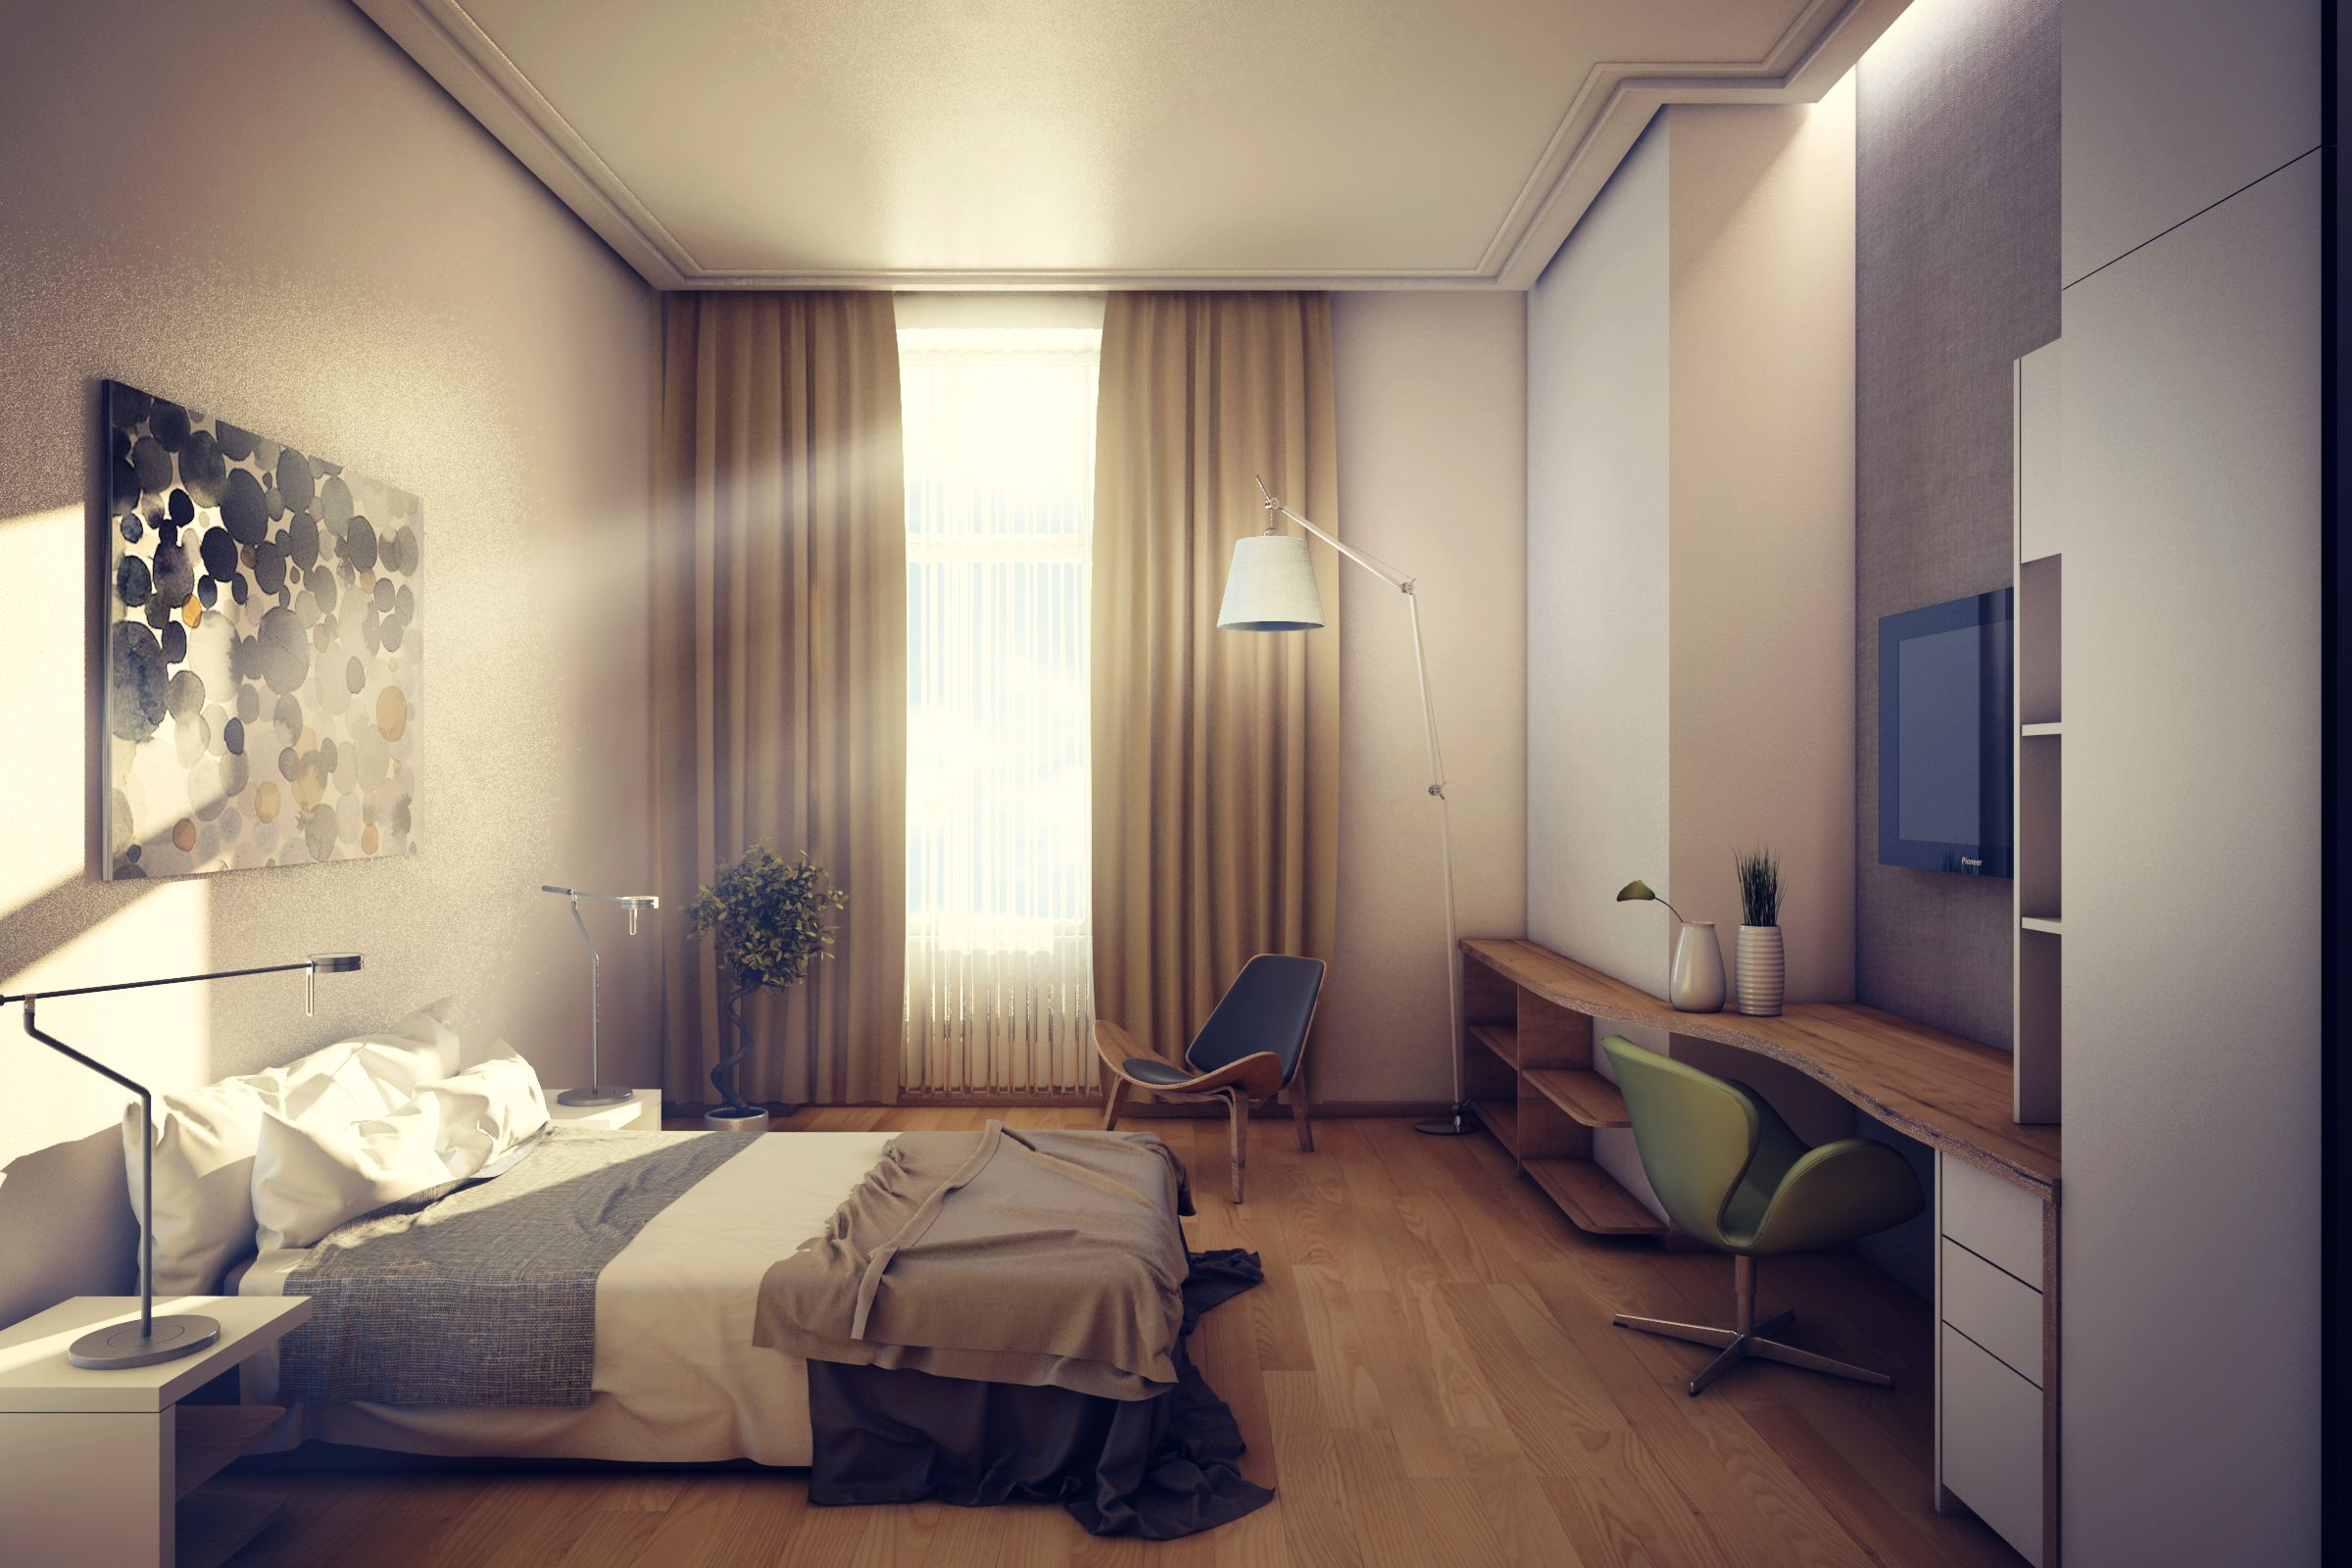 Hotel room interior design 3d modelling rendering and 3d room interior